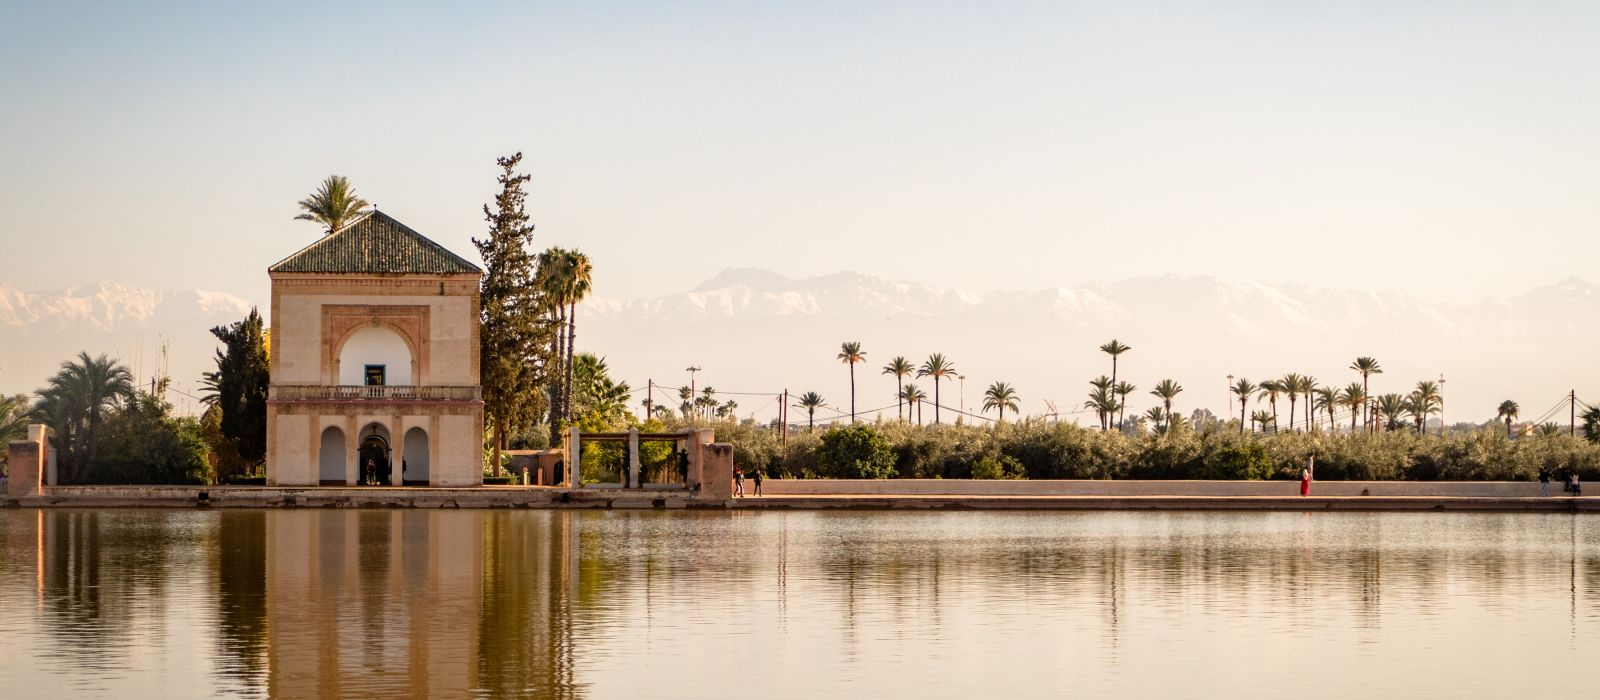 The Menara gardens are botanical gardens located to the west of Marrakech, Morocco, near the Atlas Mountains